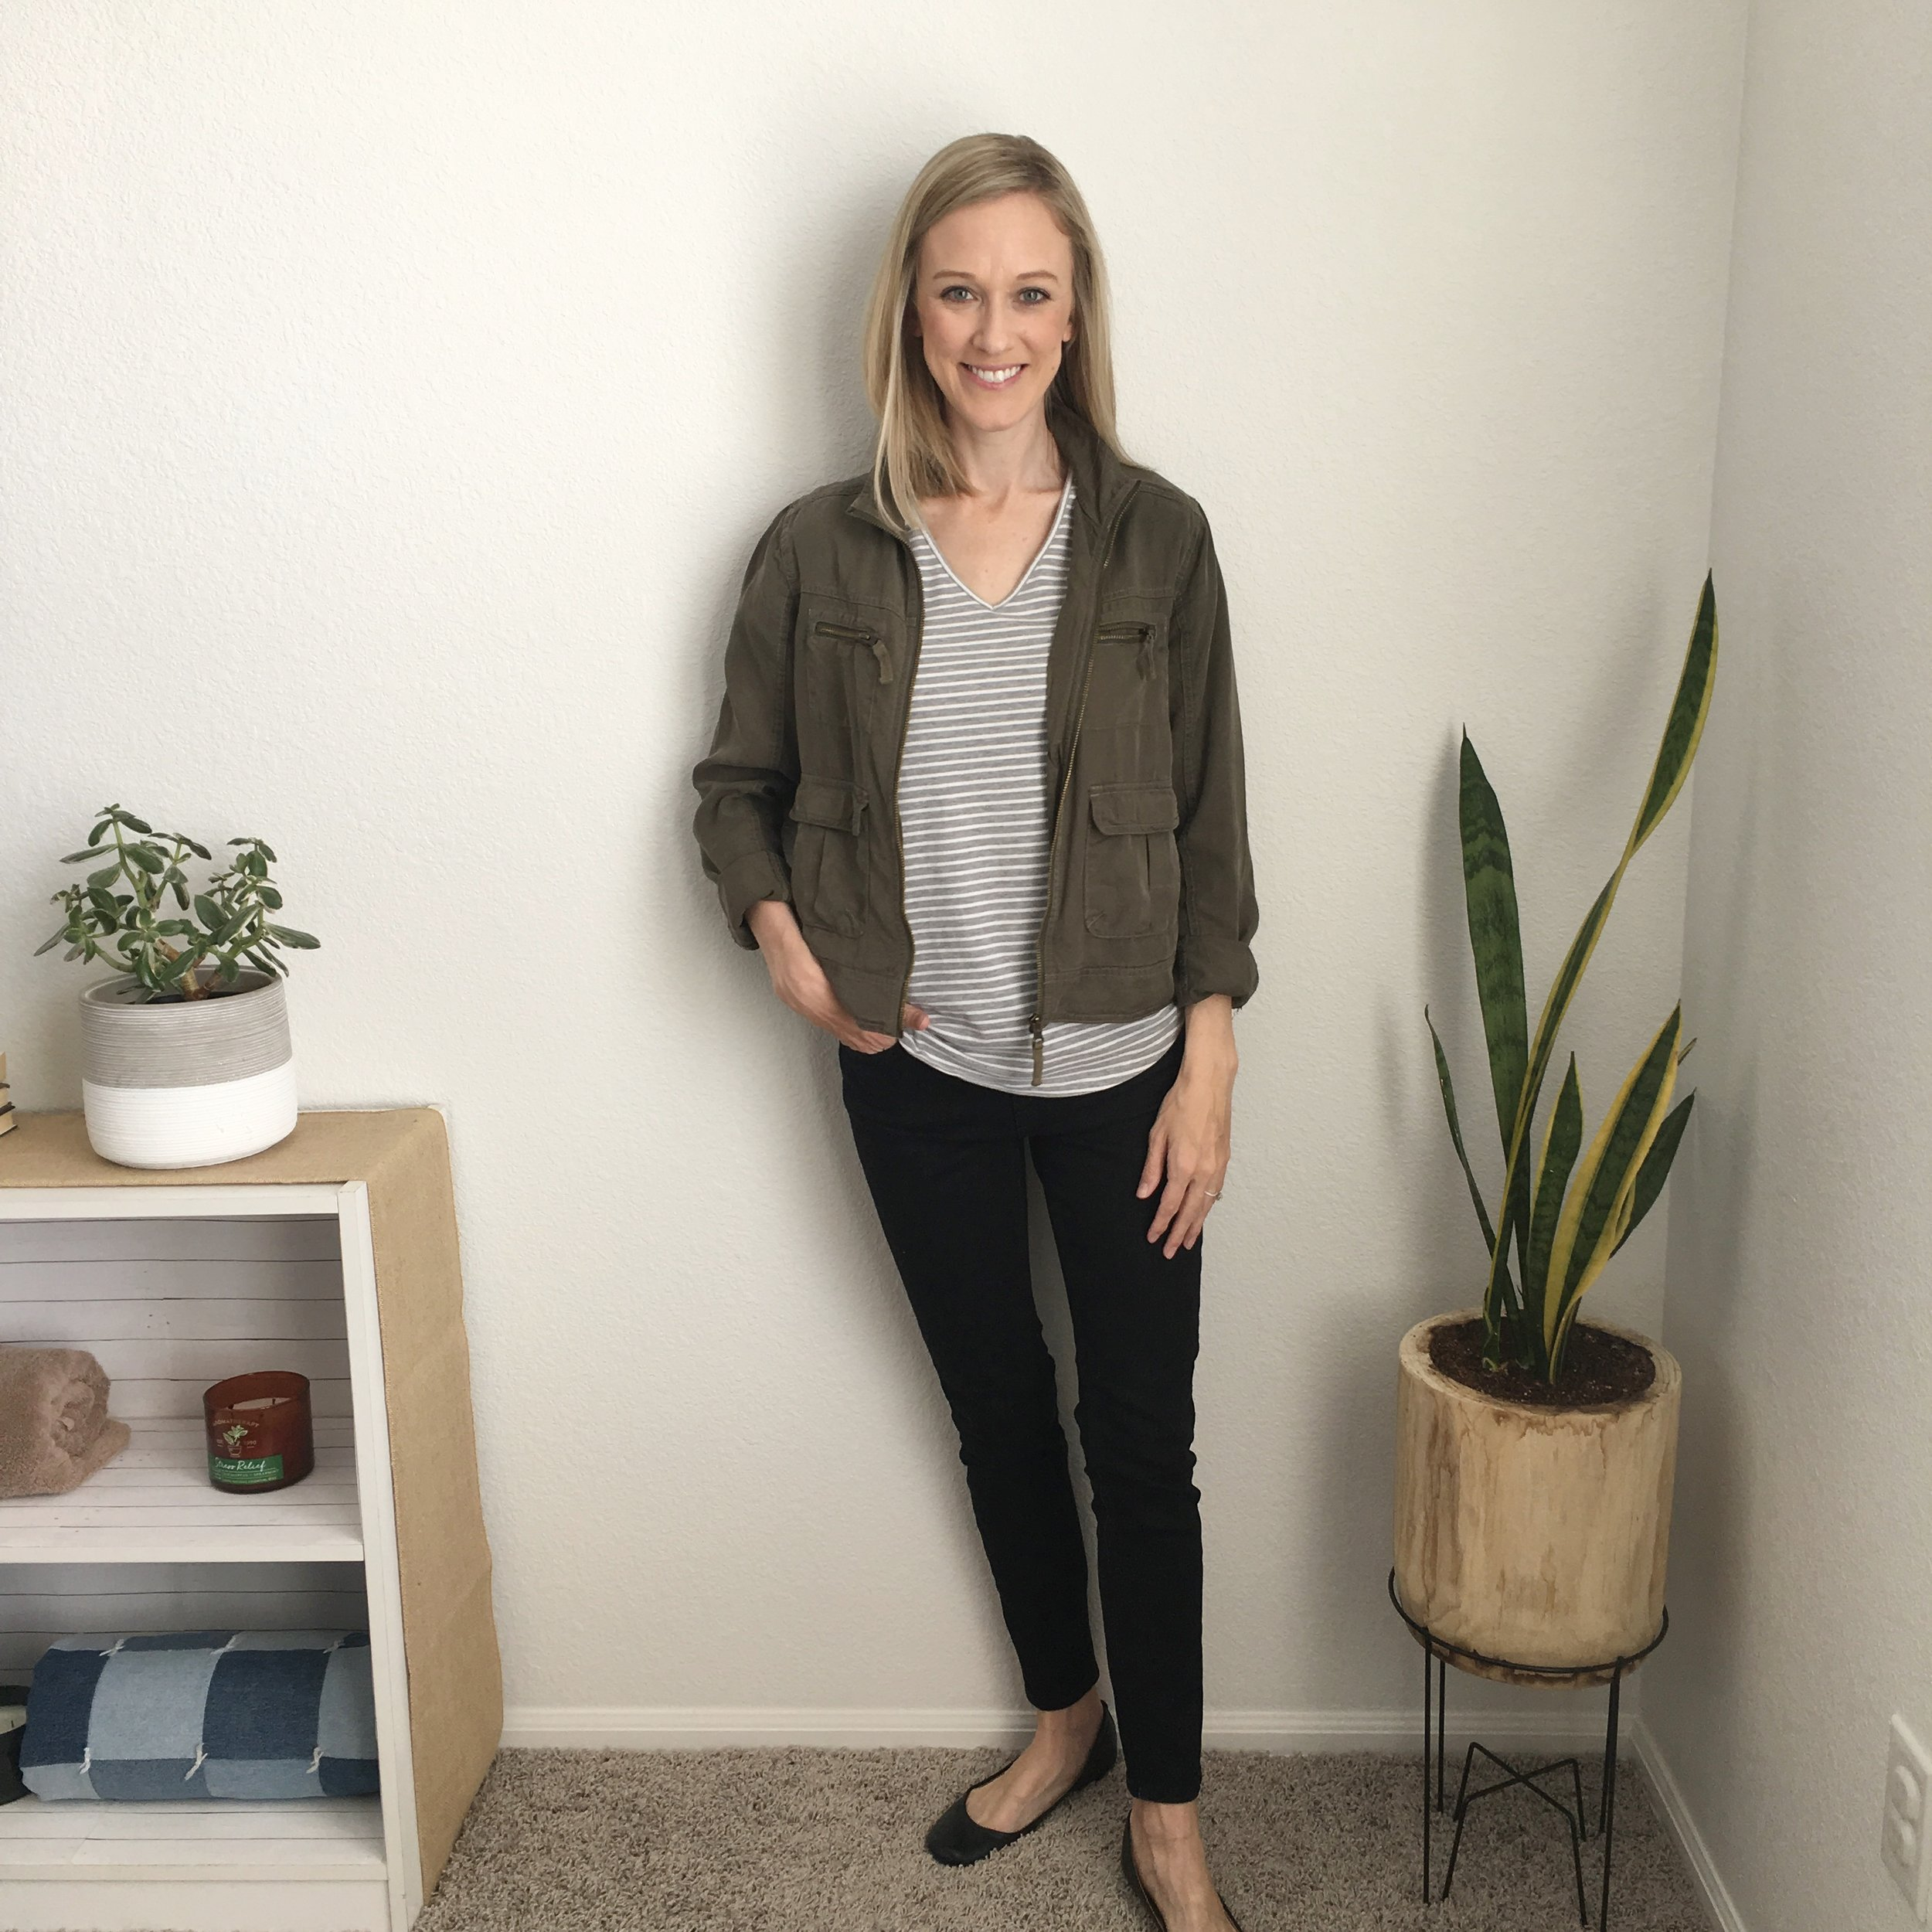 Outfit 7: 10x10 Style Challenge with ethical brands